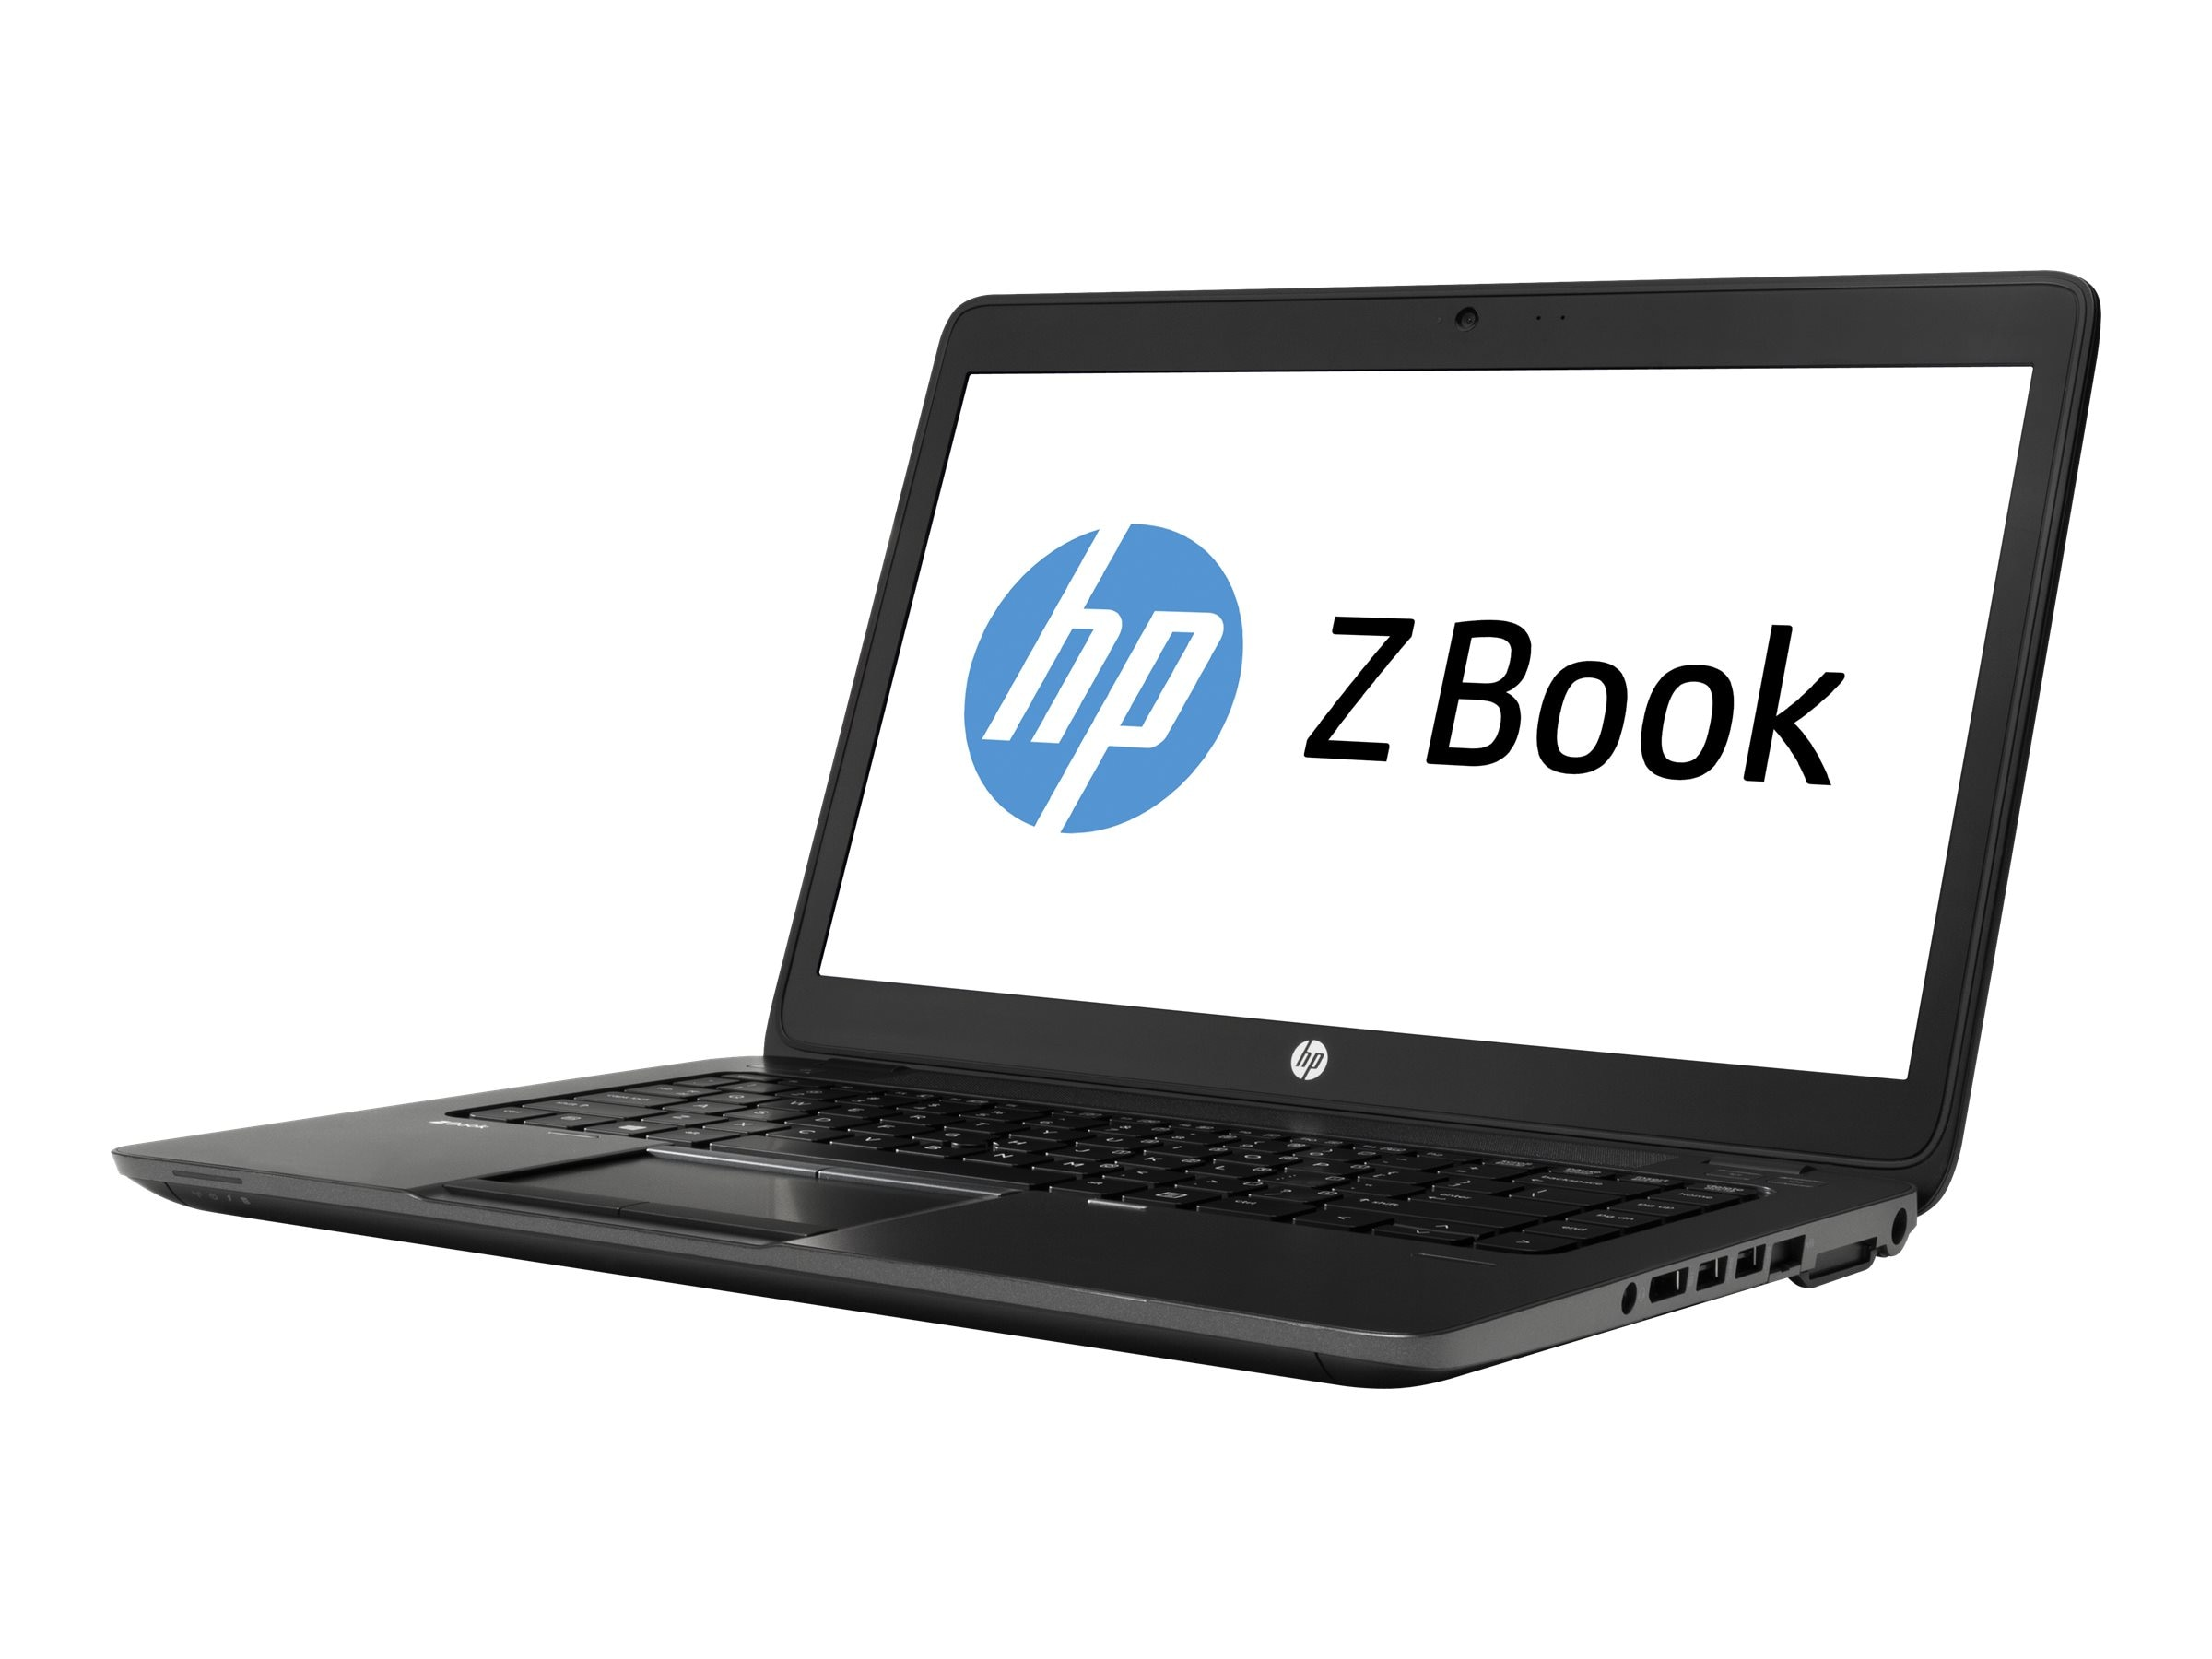 HP ZBook 14 Core i7-4600U 2.1GHz 8GB 750GB abgn GNIC BT FR WC 3C 14 HD+ W7P64-W8, F2R96UT#ABA, 16409046, Workstations - Mobile